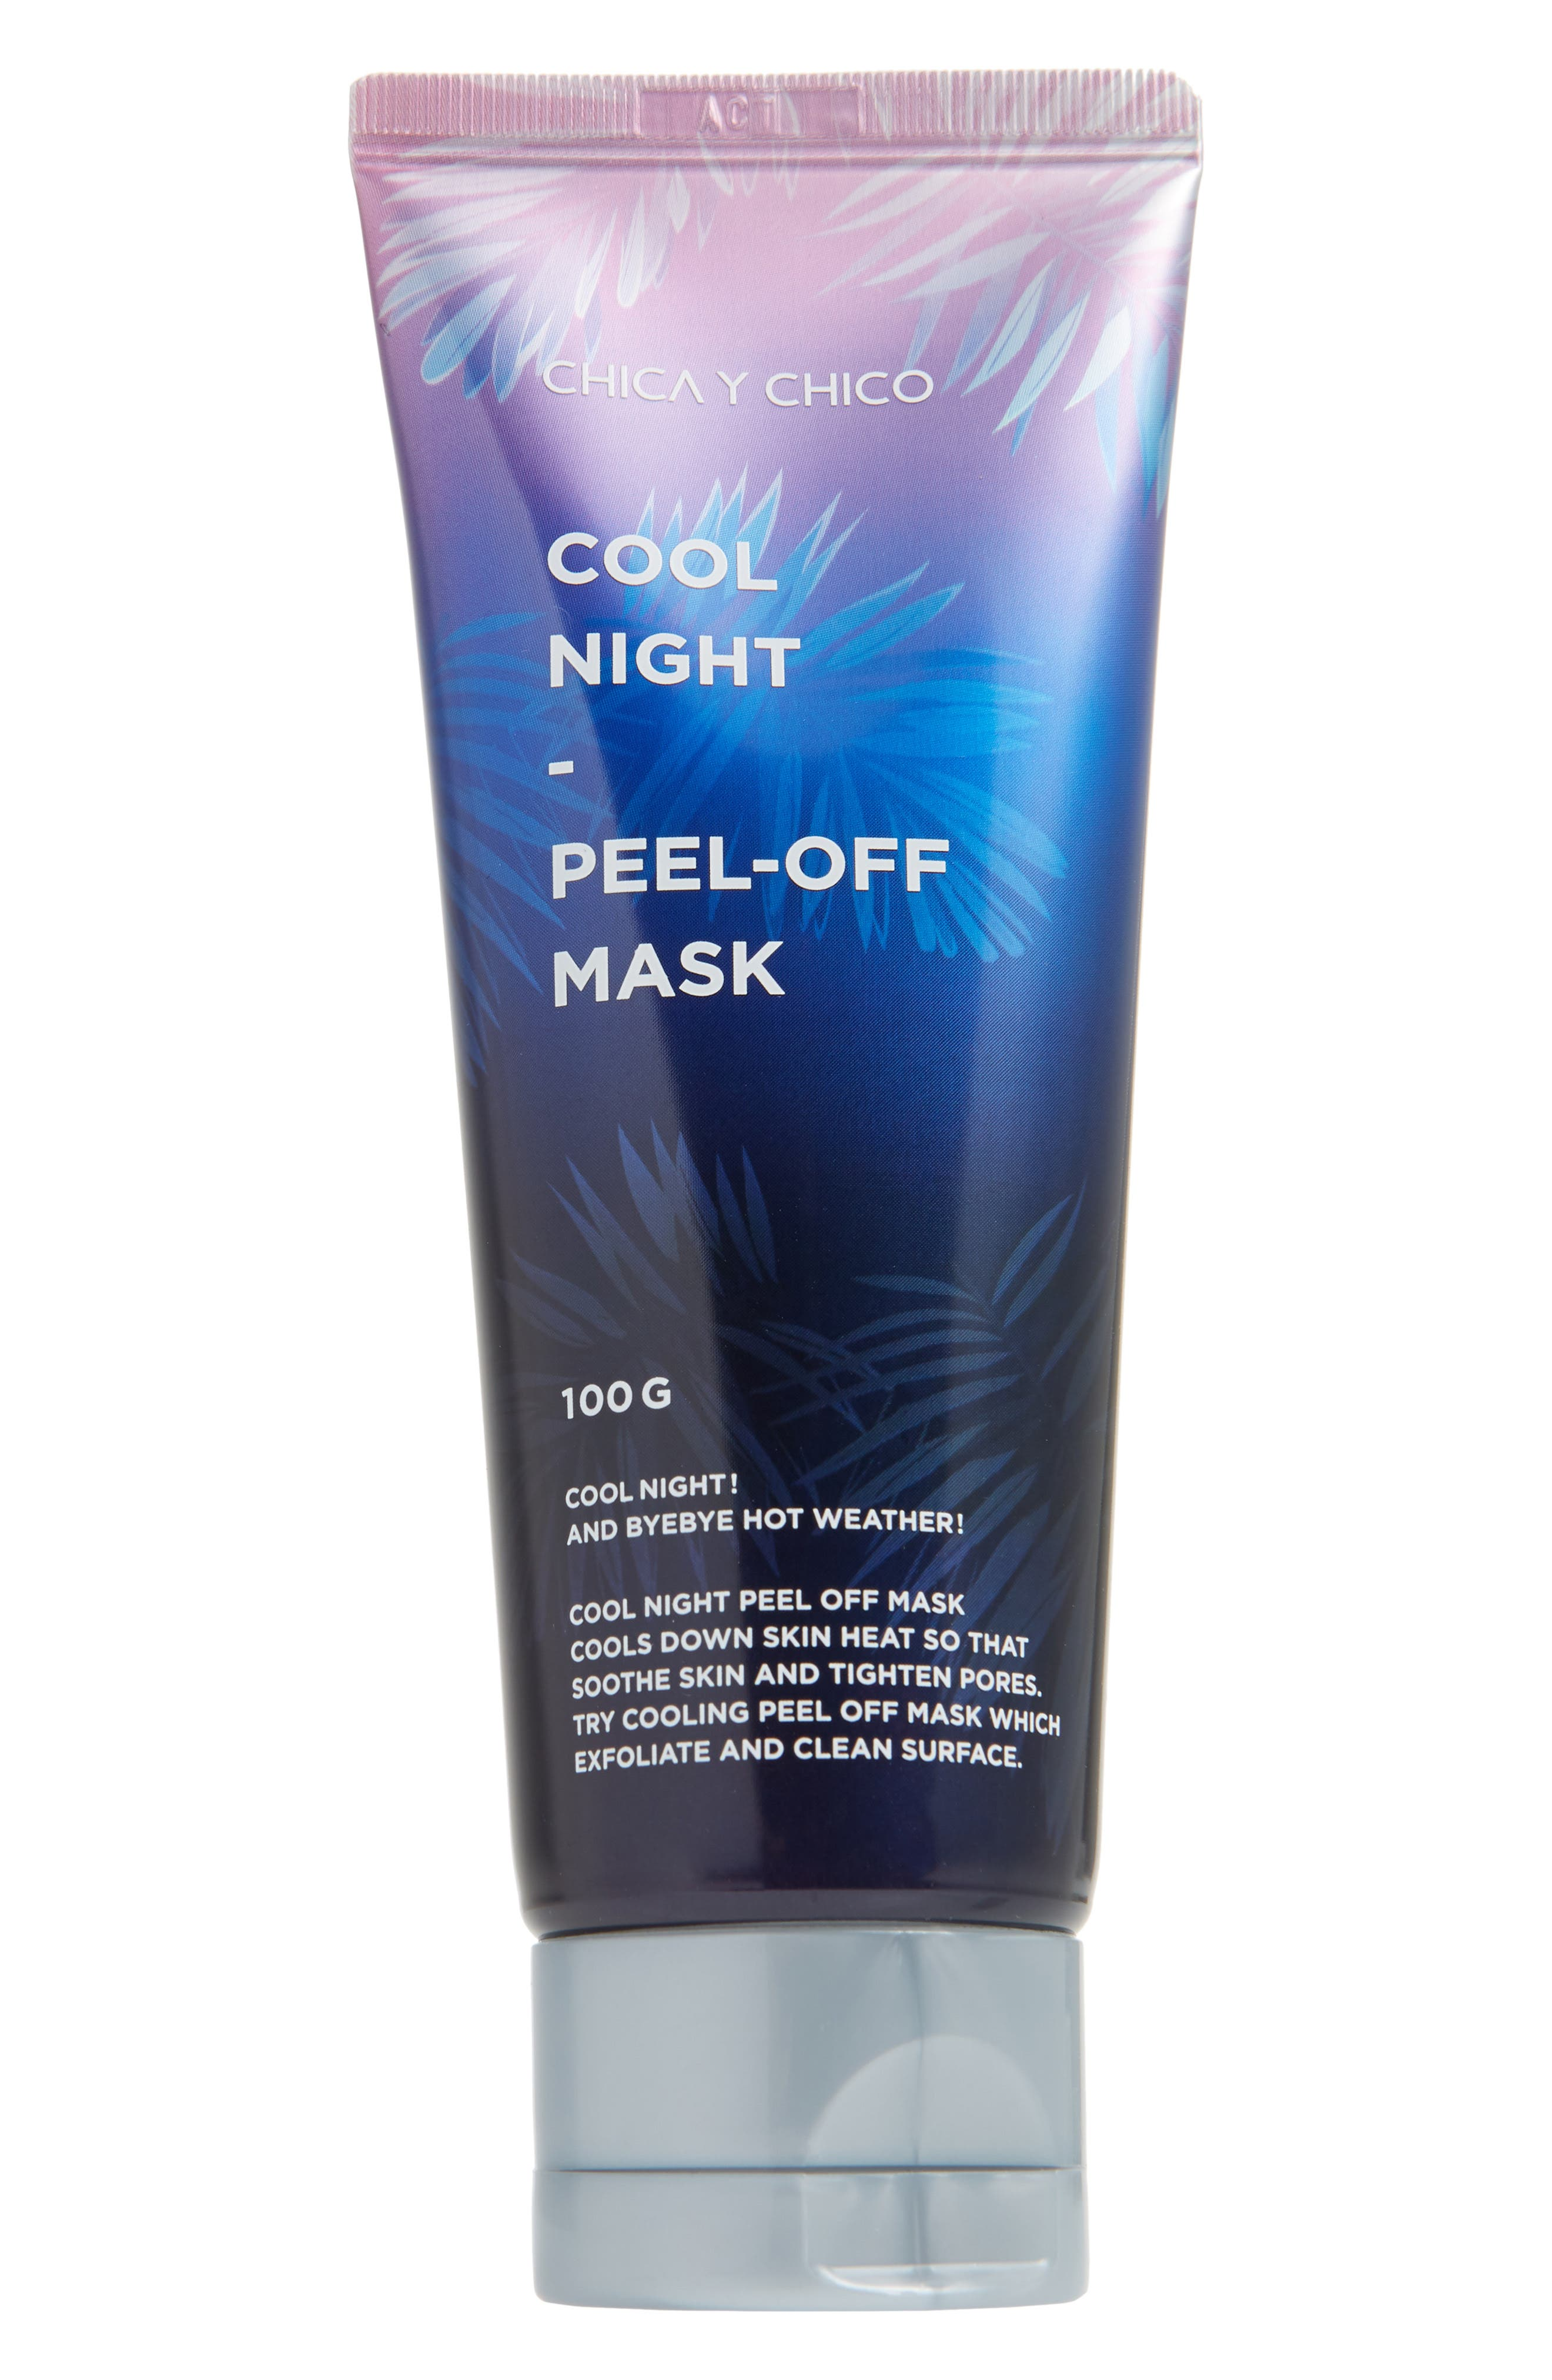 CHICA Y CHICO Cool Night Peel Off Mask in Clear